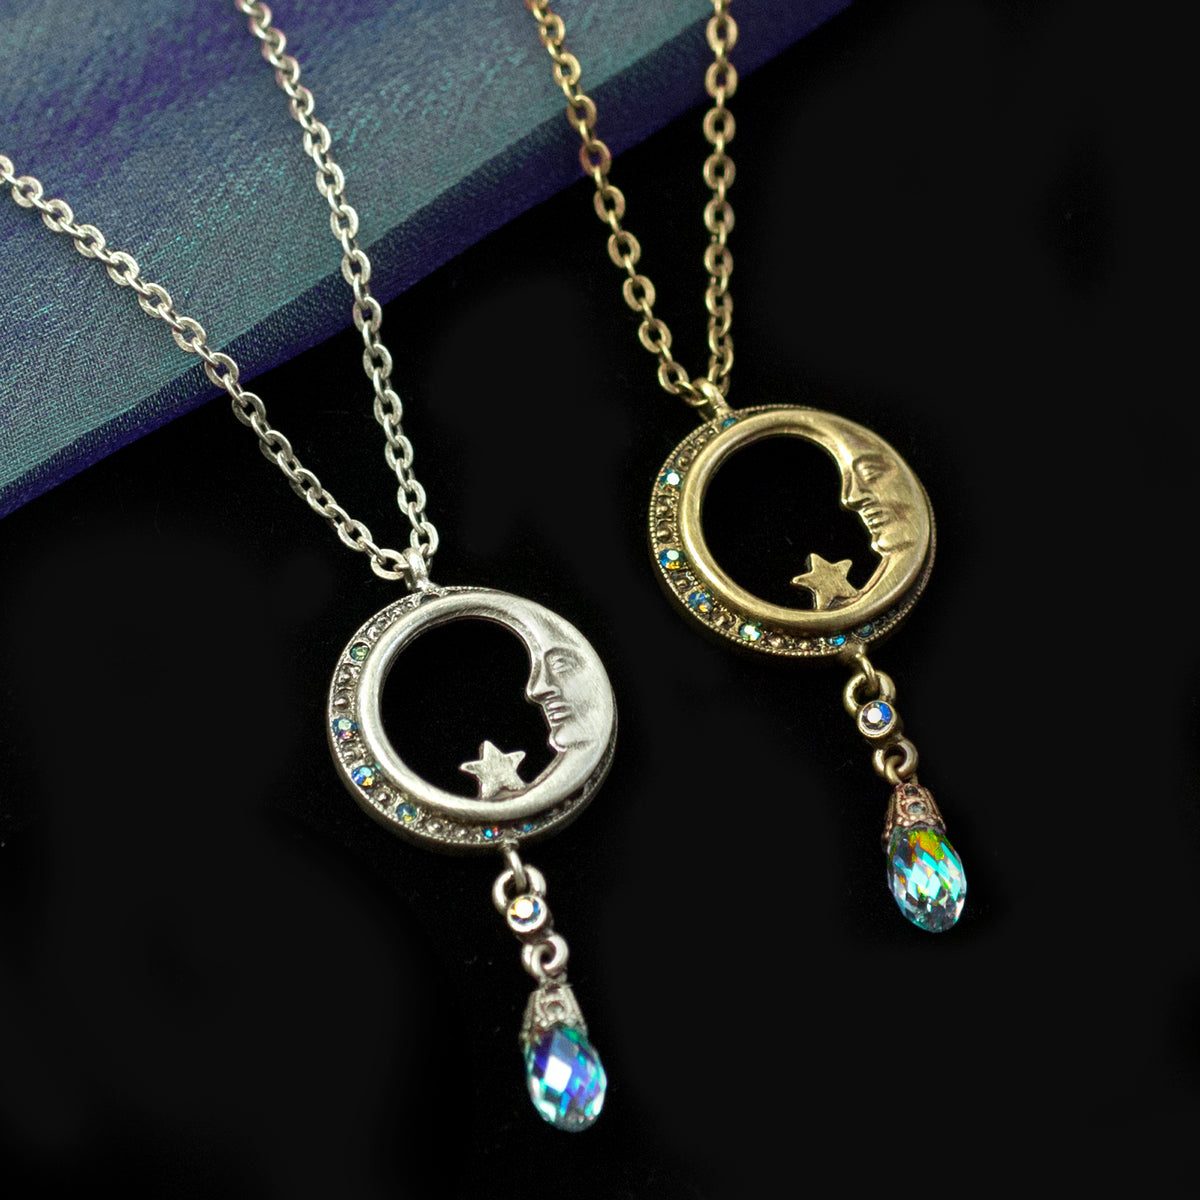 Half Moon in Circle Crystal Drop Necklace N1626 - sweetromanceonlinejewelry